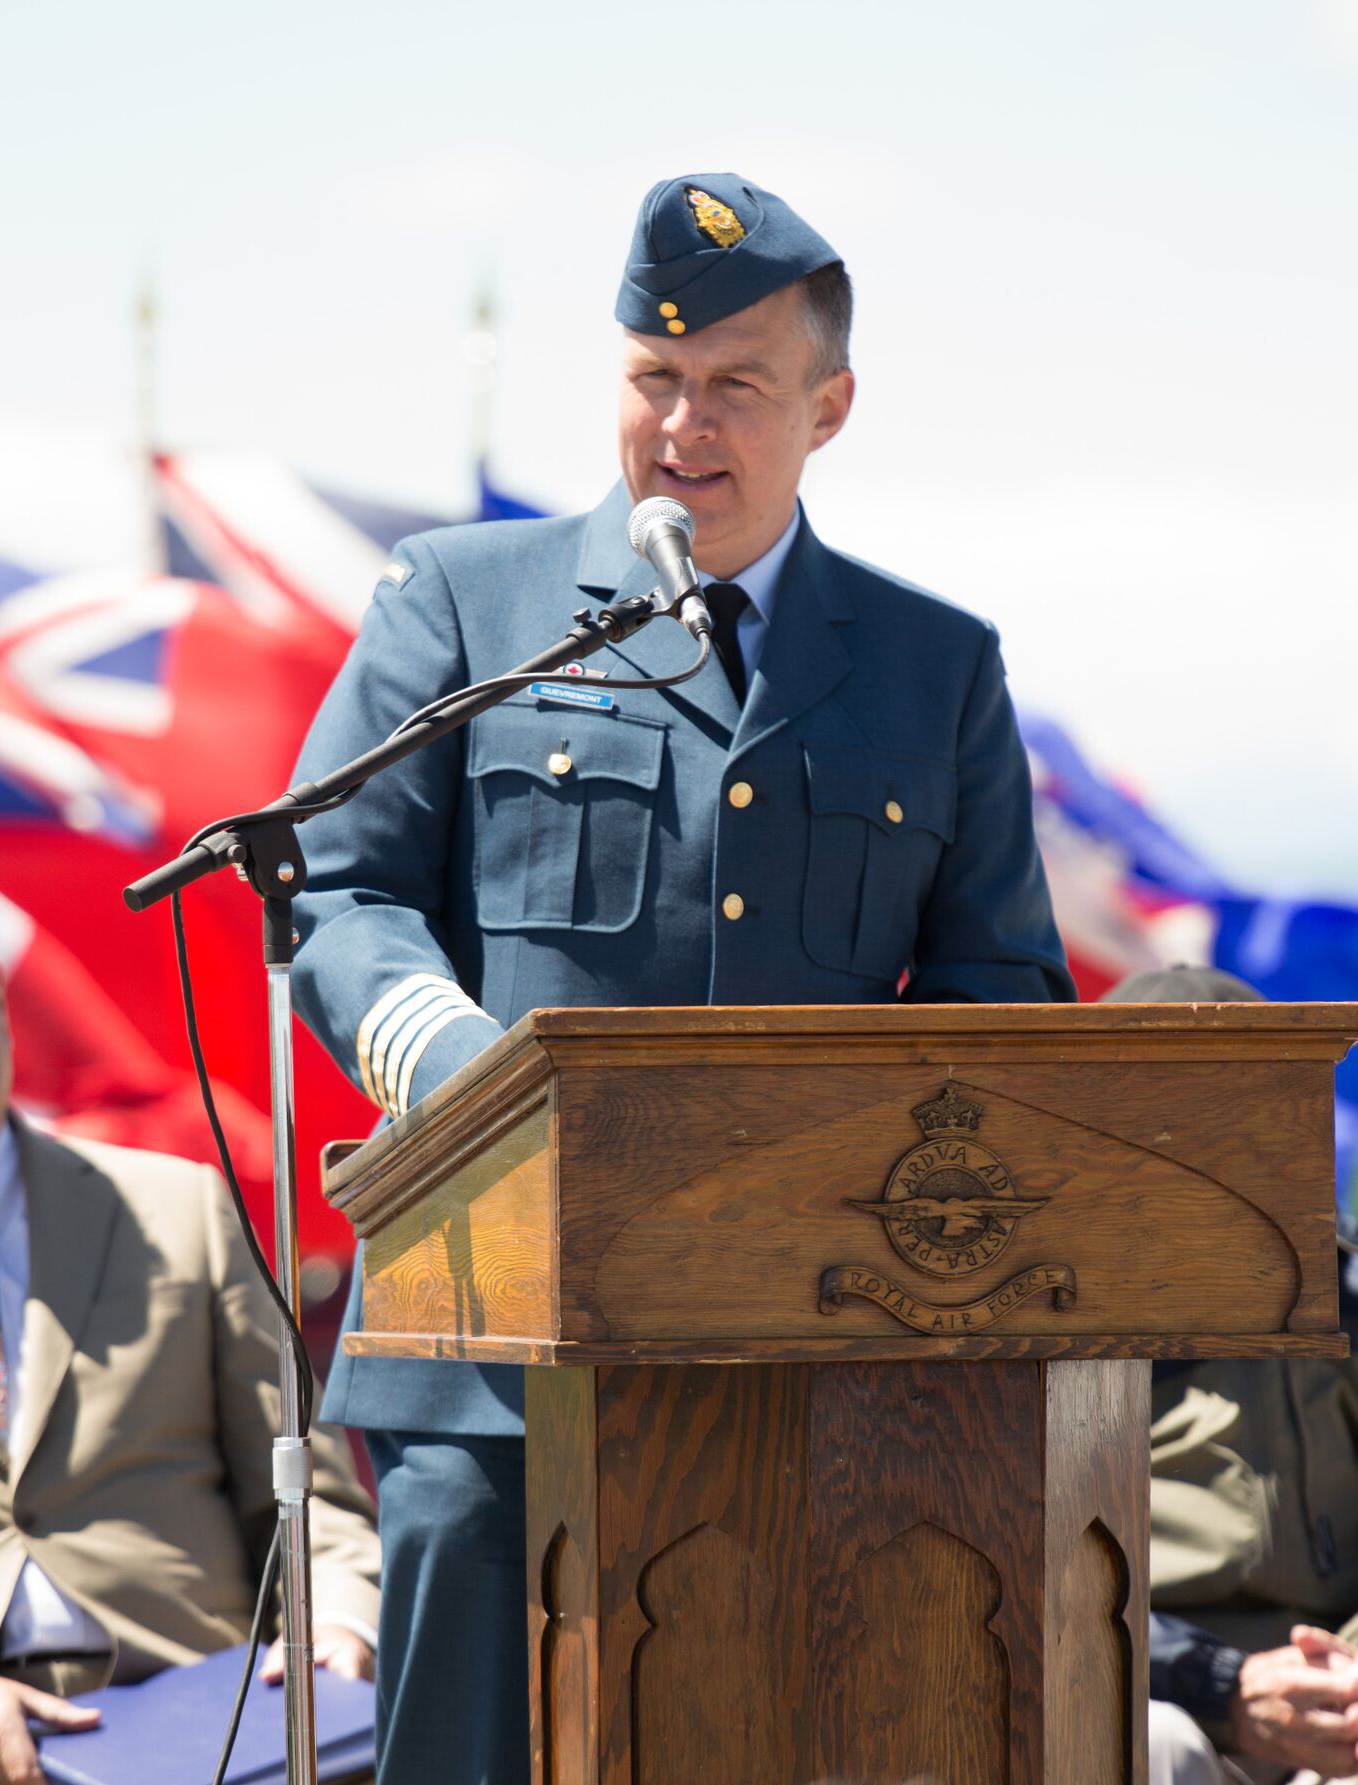 Dr. Stéphane Gouvrement, honorary colonel of 419 Tactical Fighter Training Squadron, located at 4 Wing Cold Lake, Ontario, shared the history of the British Commonwealth Air Training Plan with guests and spectators at the 75th anniversary reunion of No. 31 Elementary Flying Training School De Winton. PHOTO: Courtesy of Anne Gafiuk